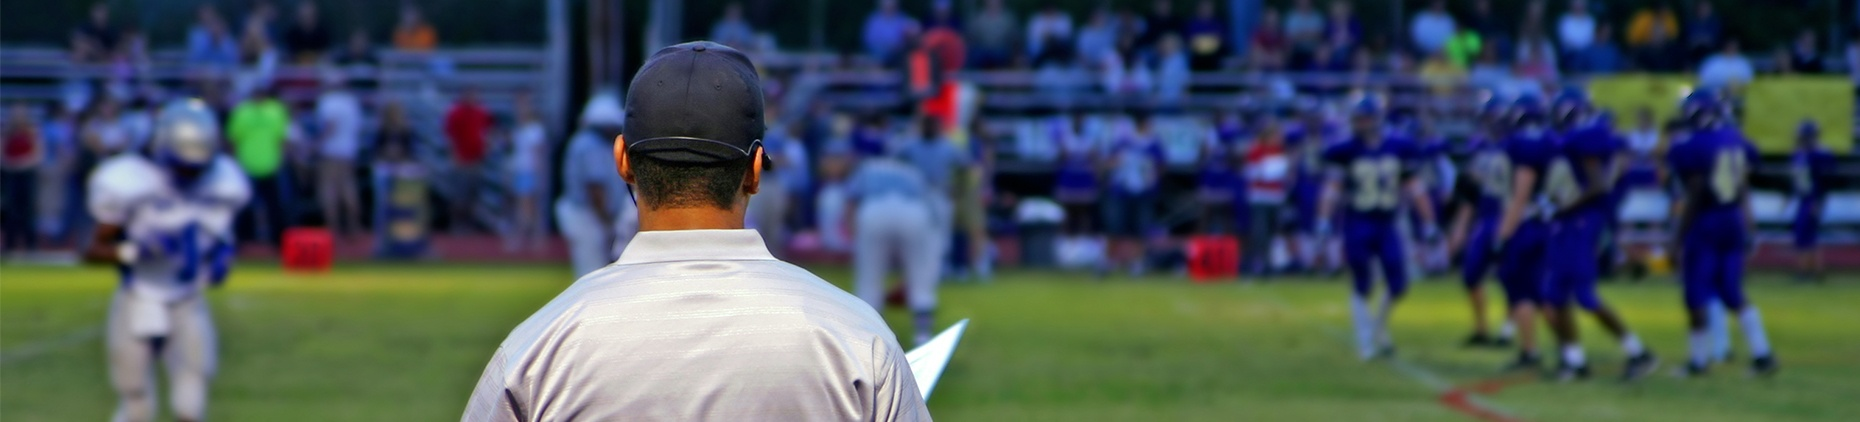 5 Sales Coaching Myths We Can All Safely Ignore